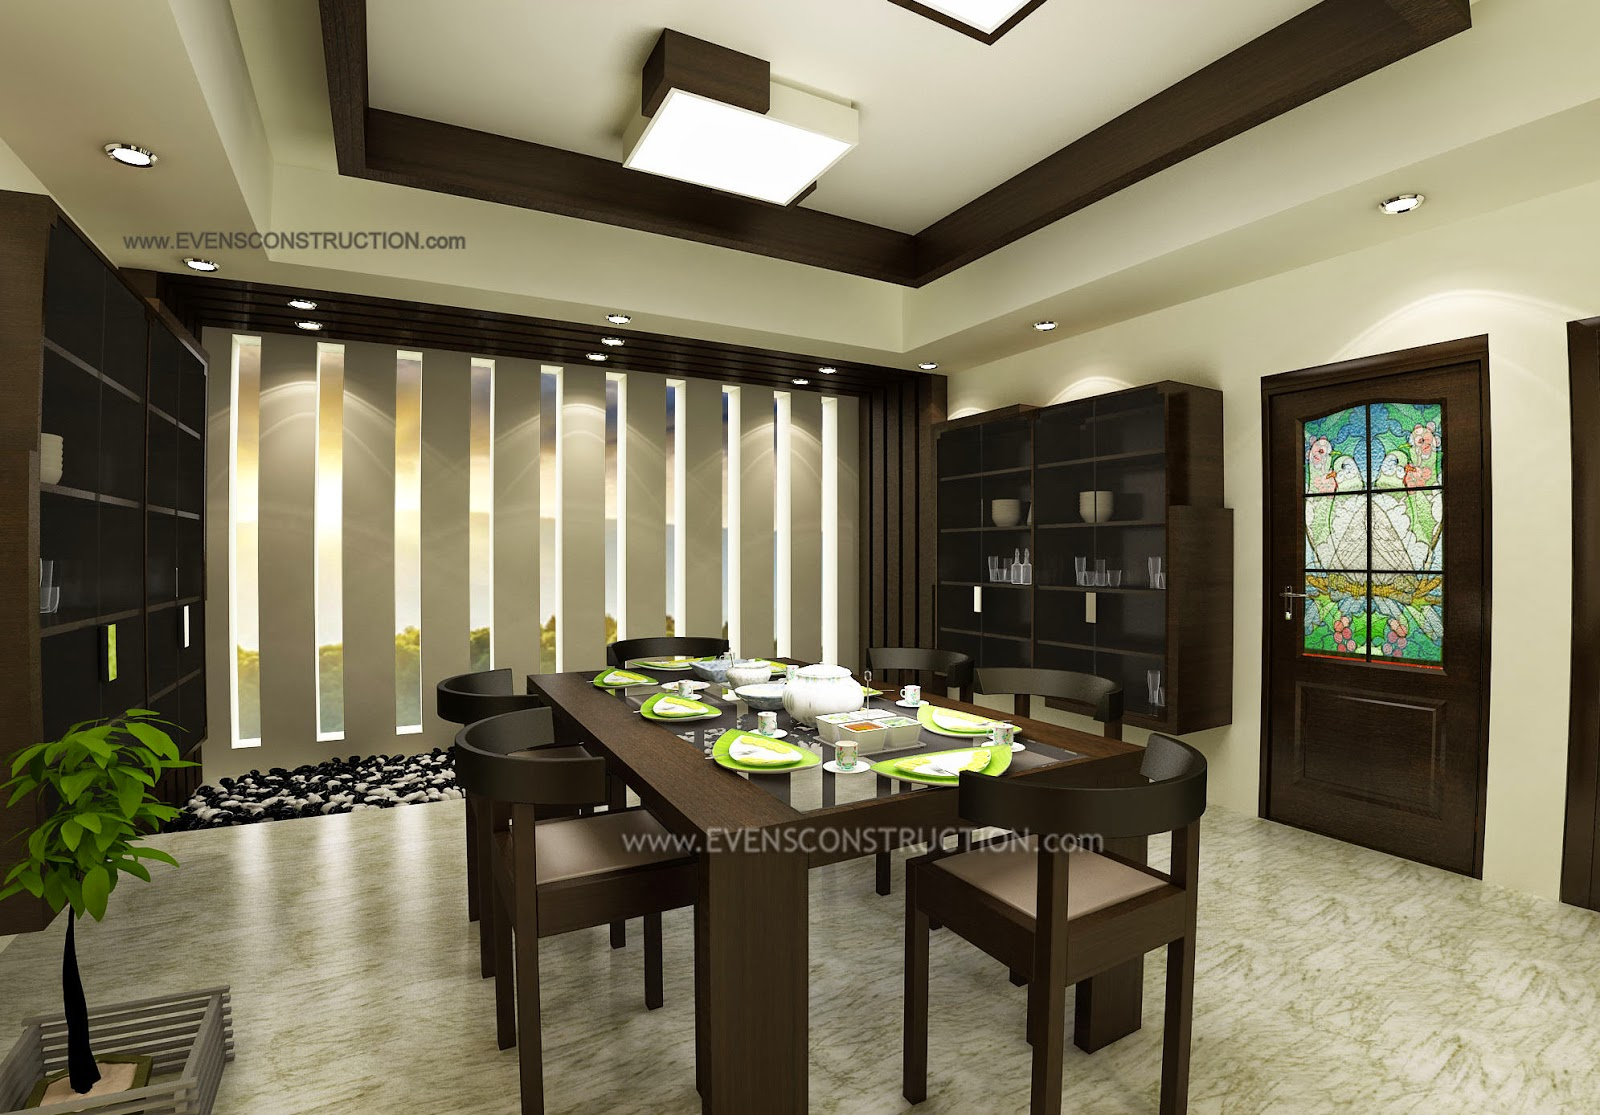 Evens construction pvt ltd modern dining room for Dining hall interior design